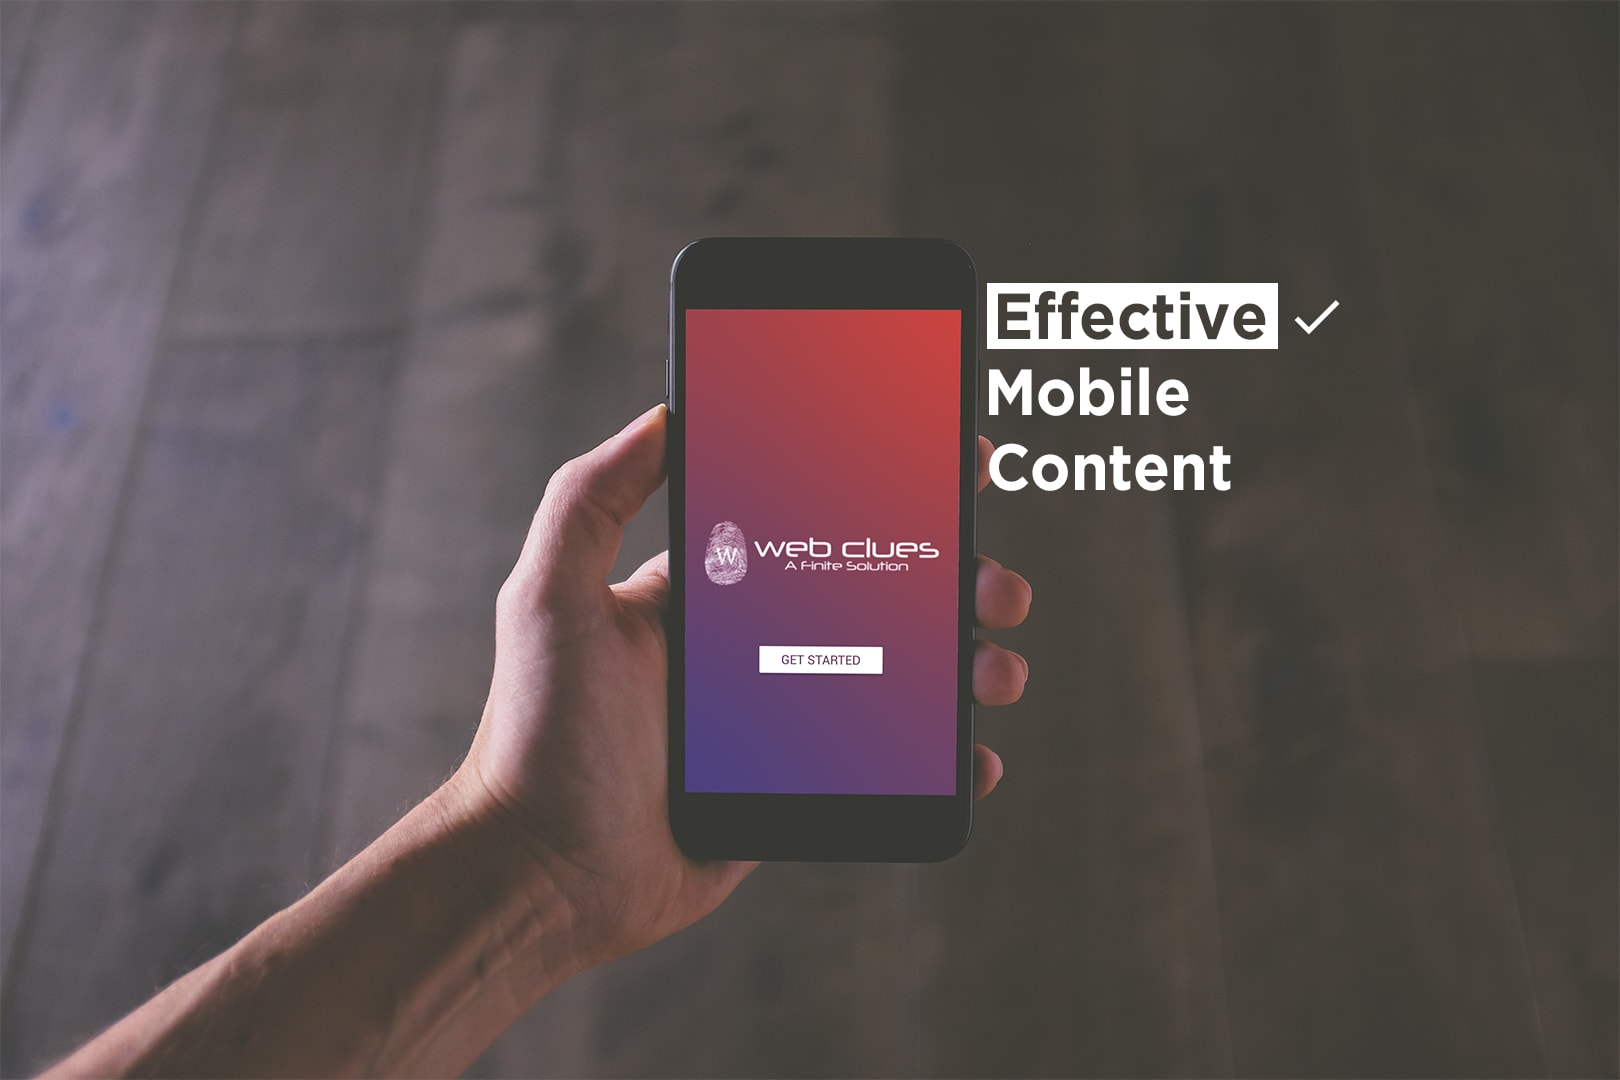 Effective Content - WebClues Infotech